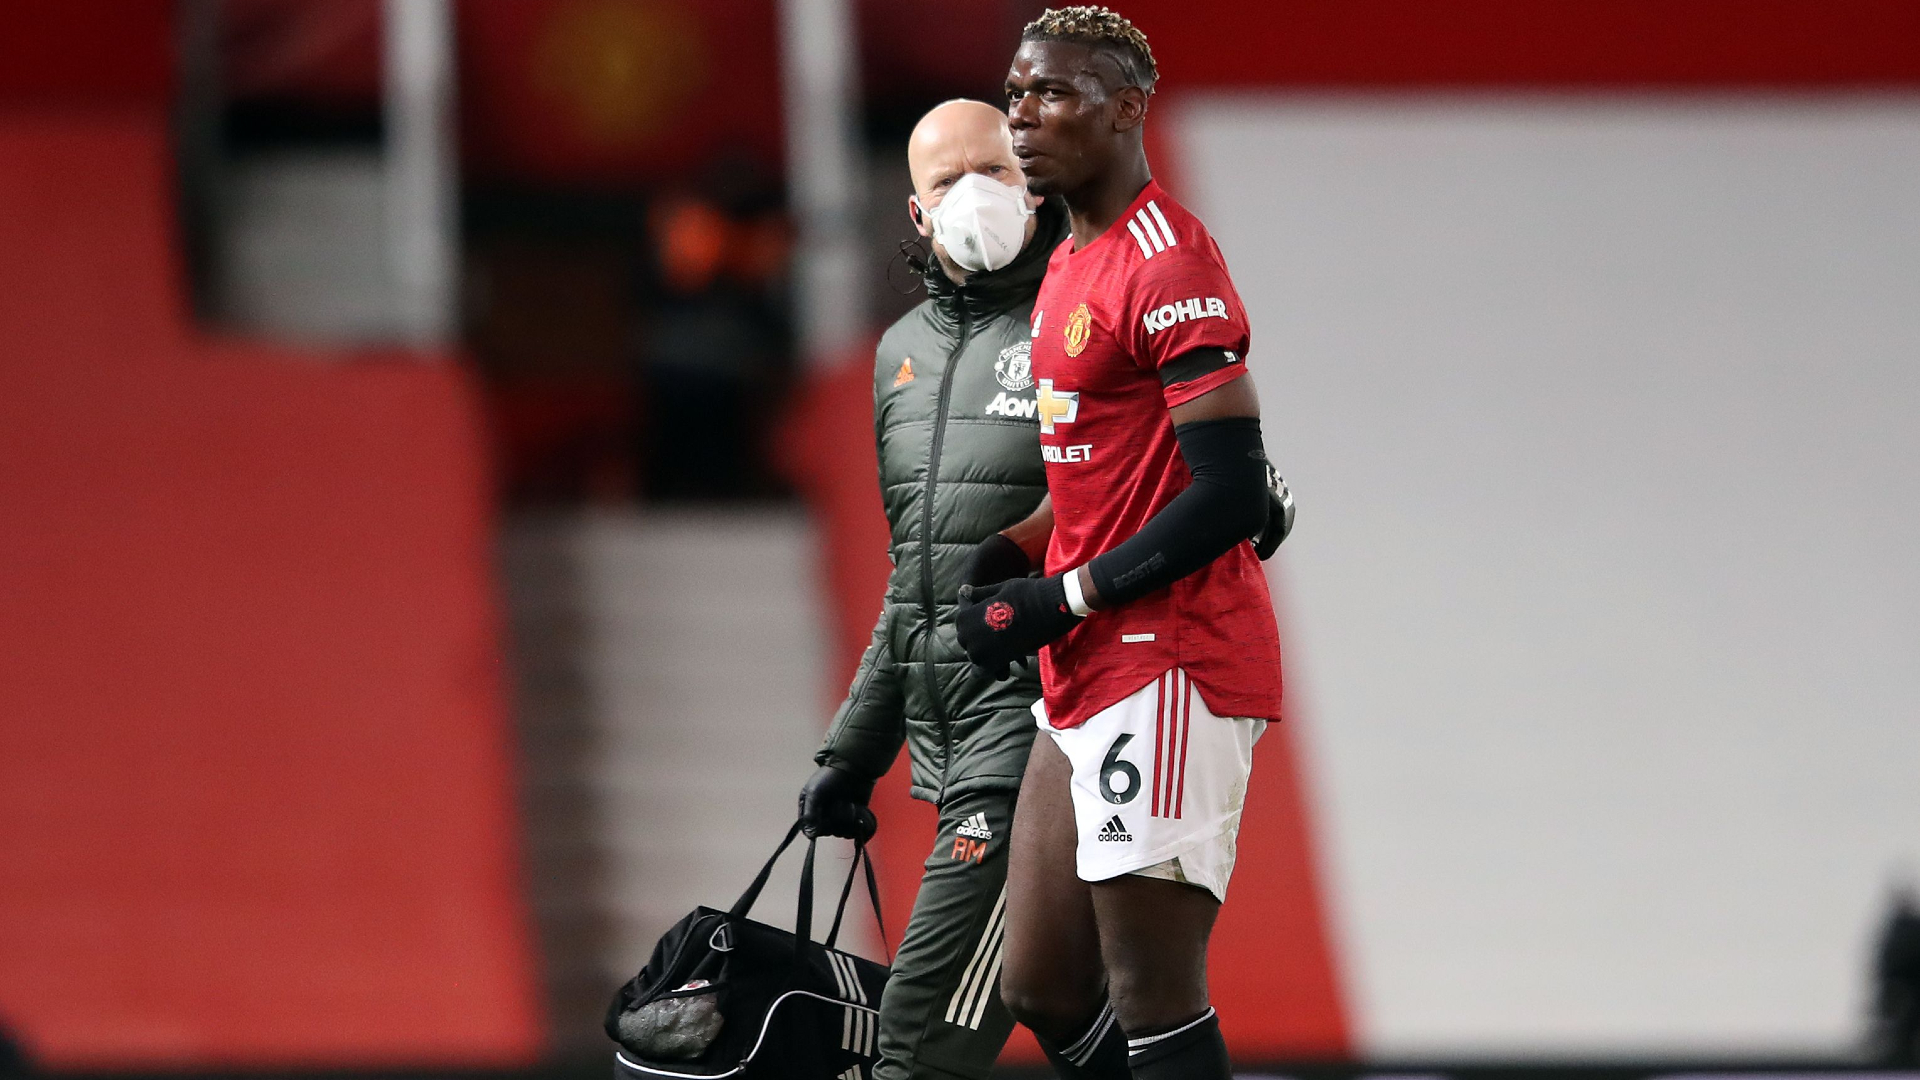 Pogba limps off injured in Man Utd's clash with Everton